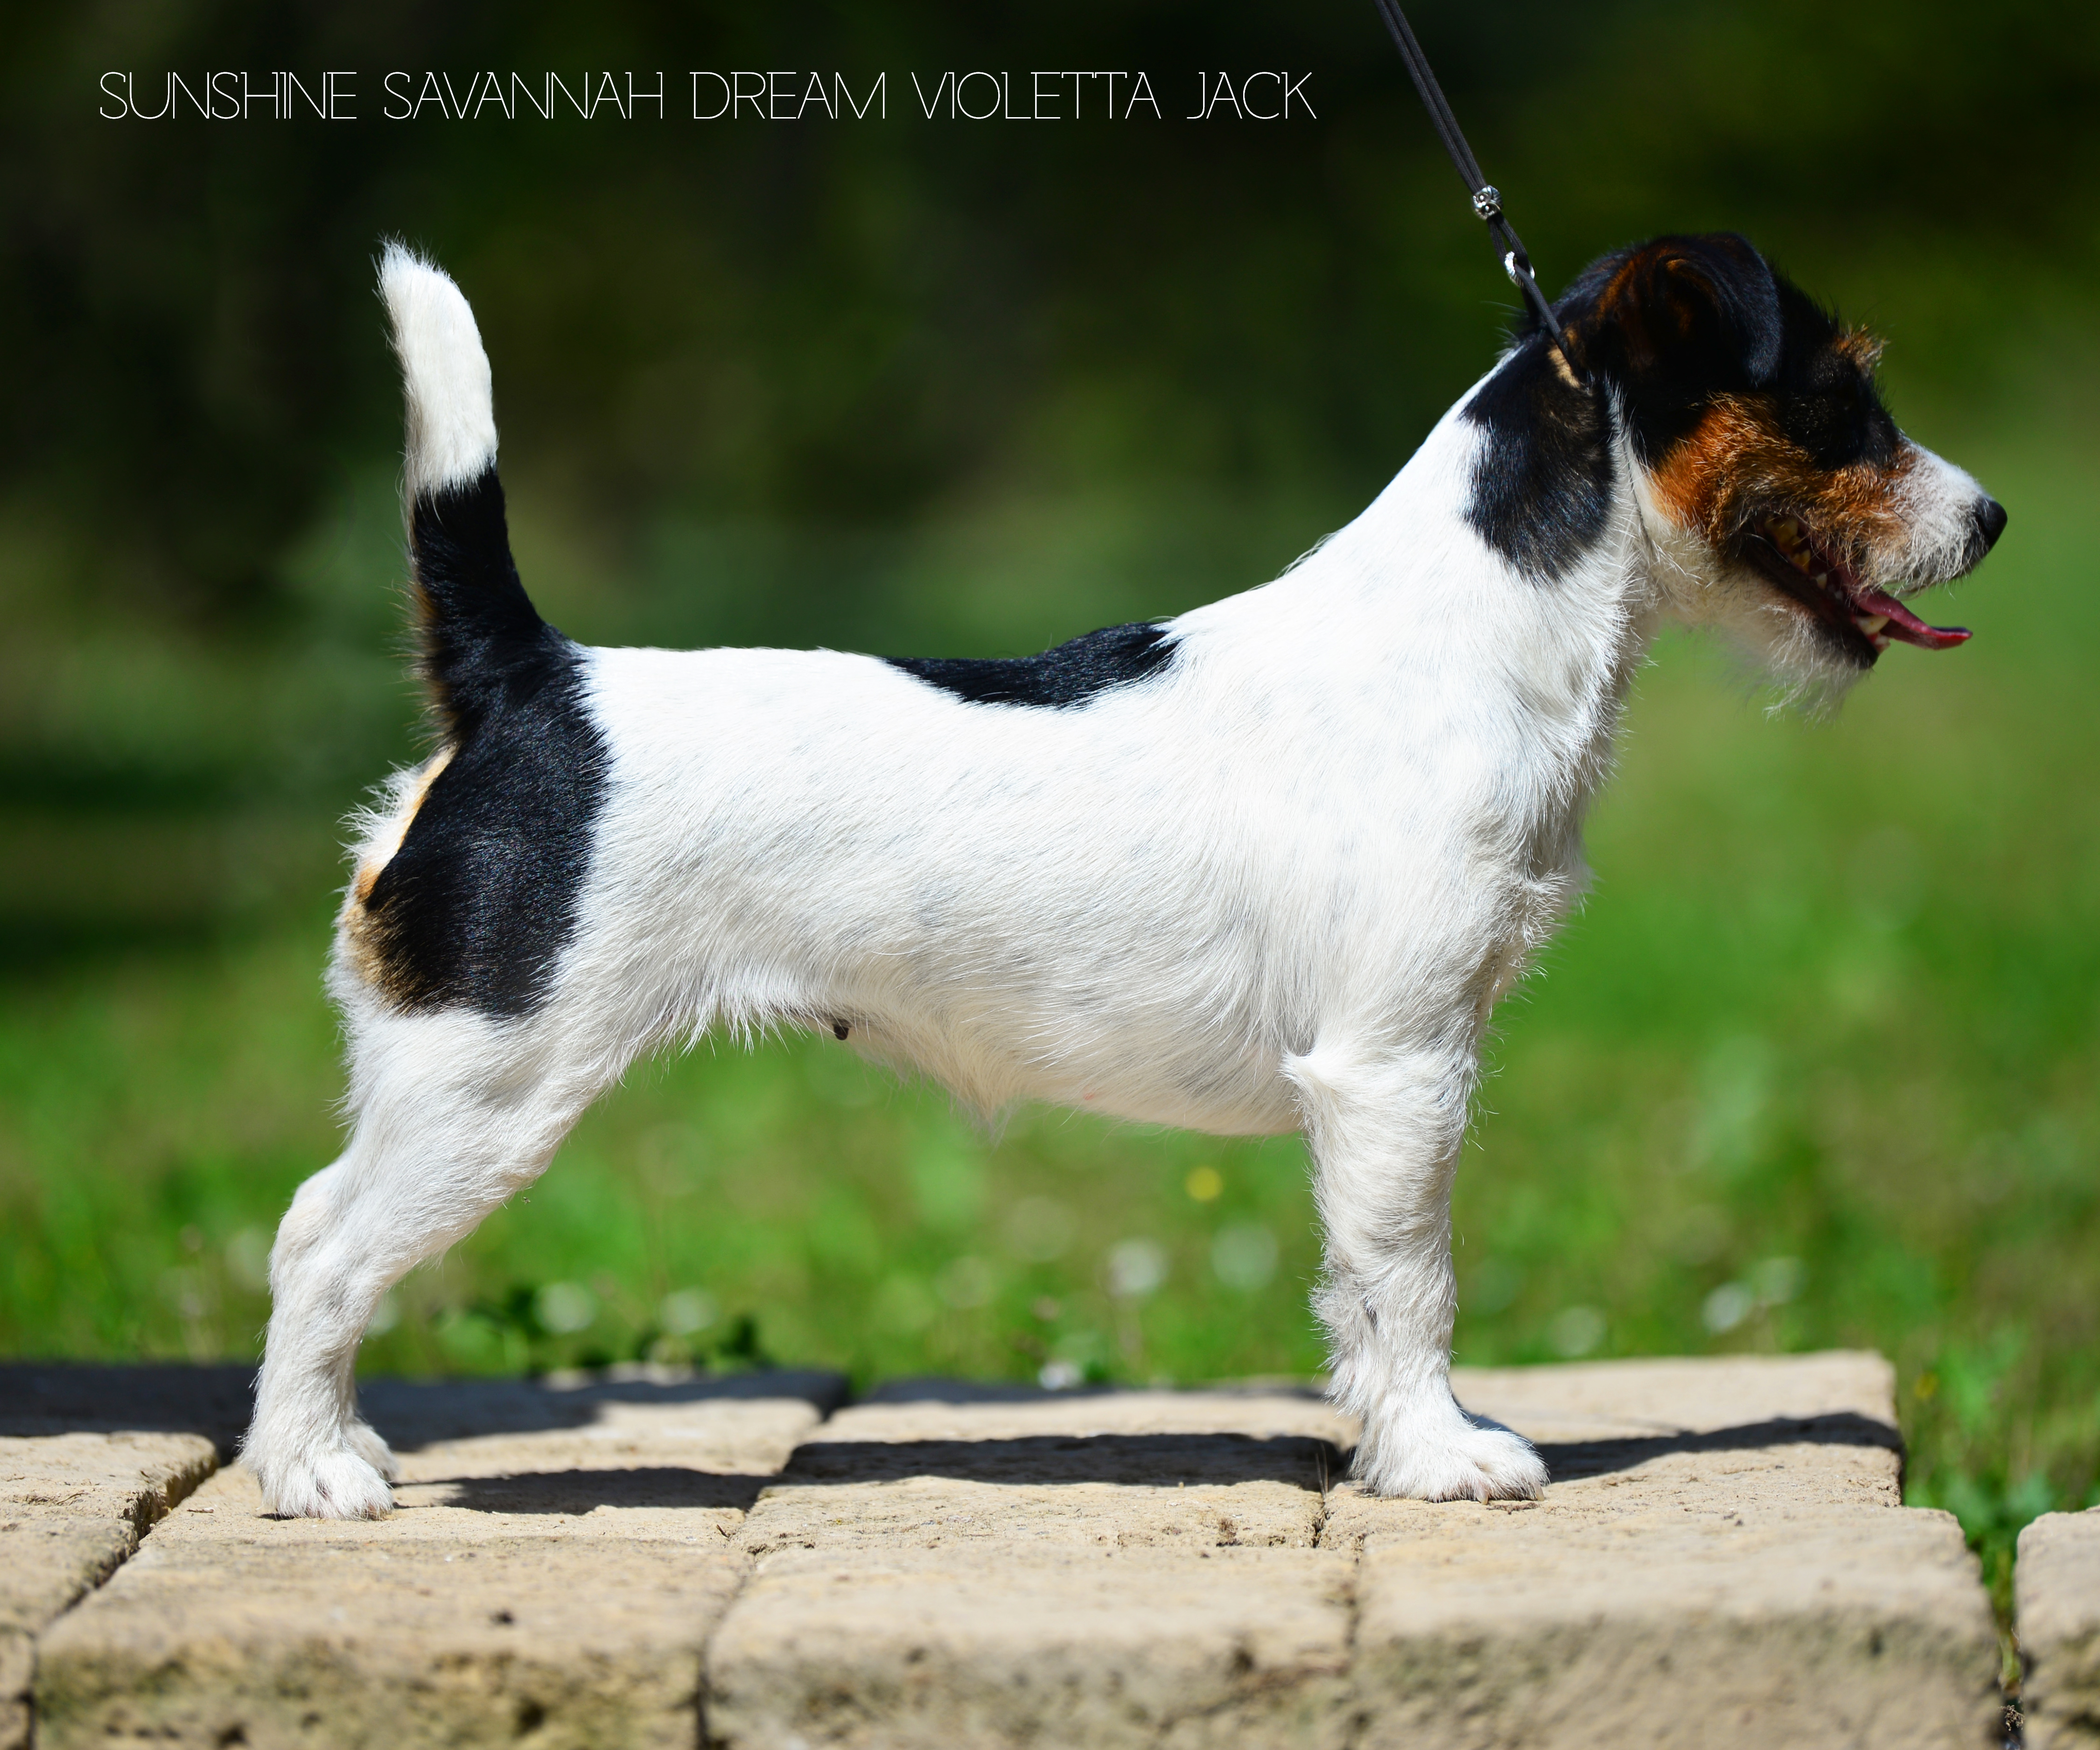 Sunshine Savannah Dream Violetta Jrt